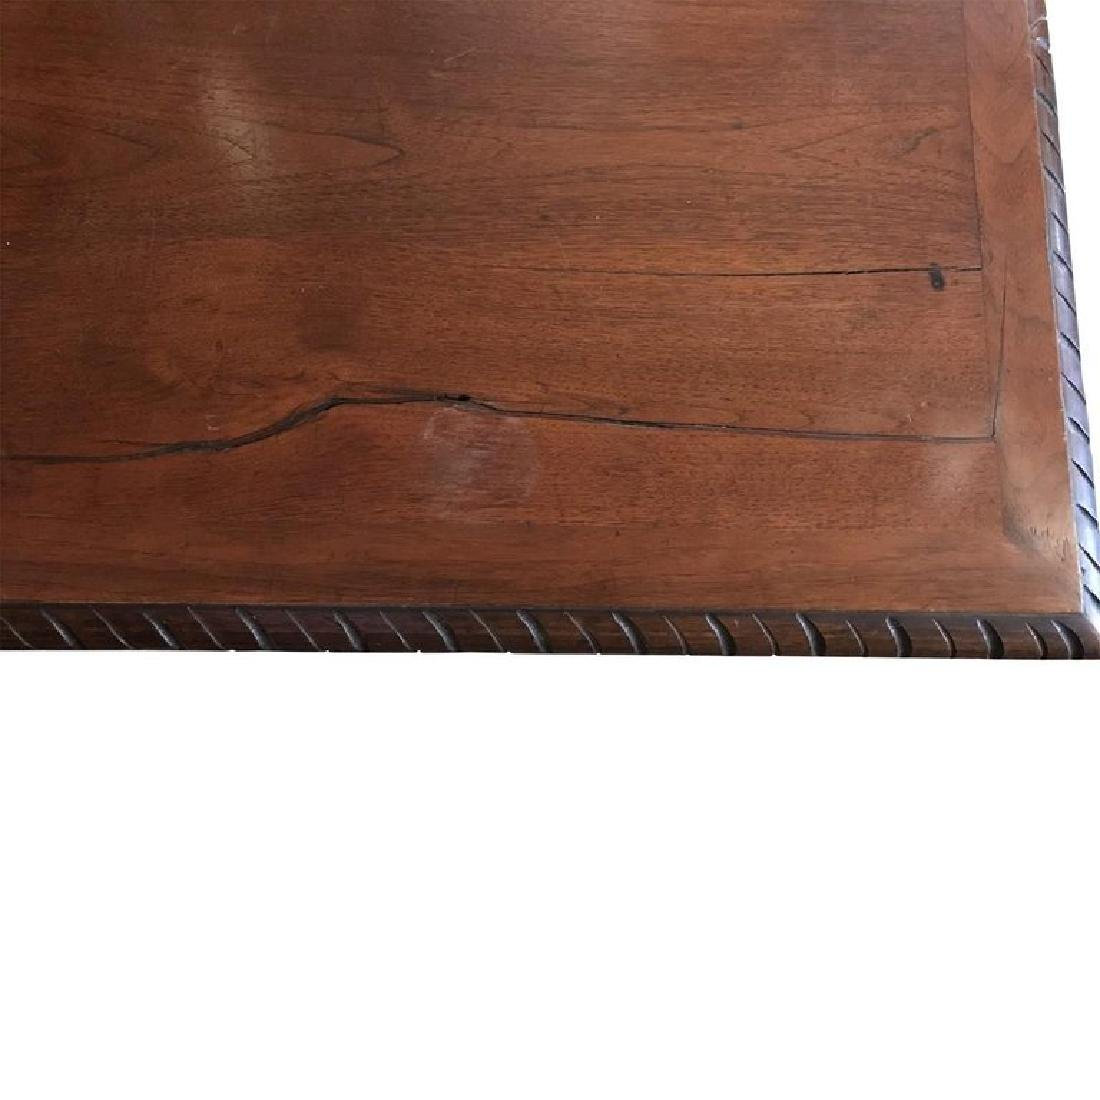 Renaissance Style Carved Walnut Refectory Table - 3